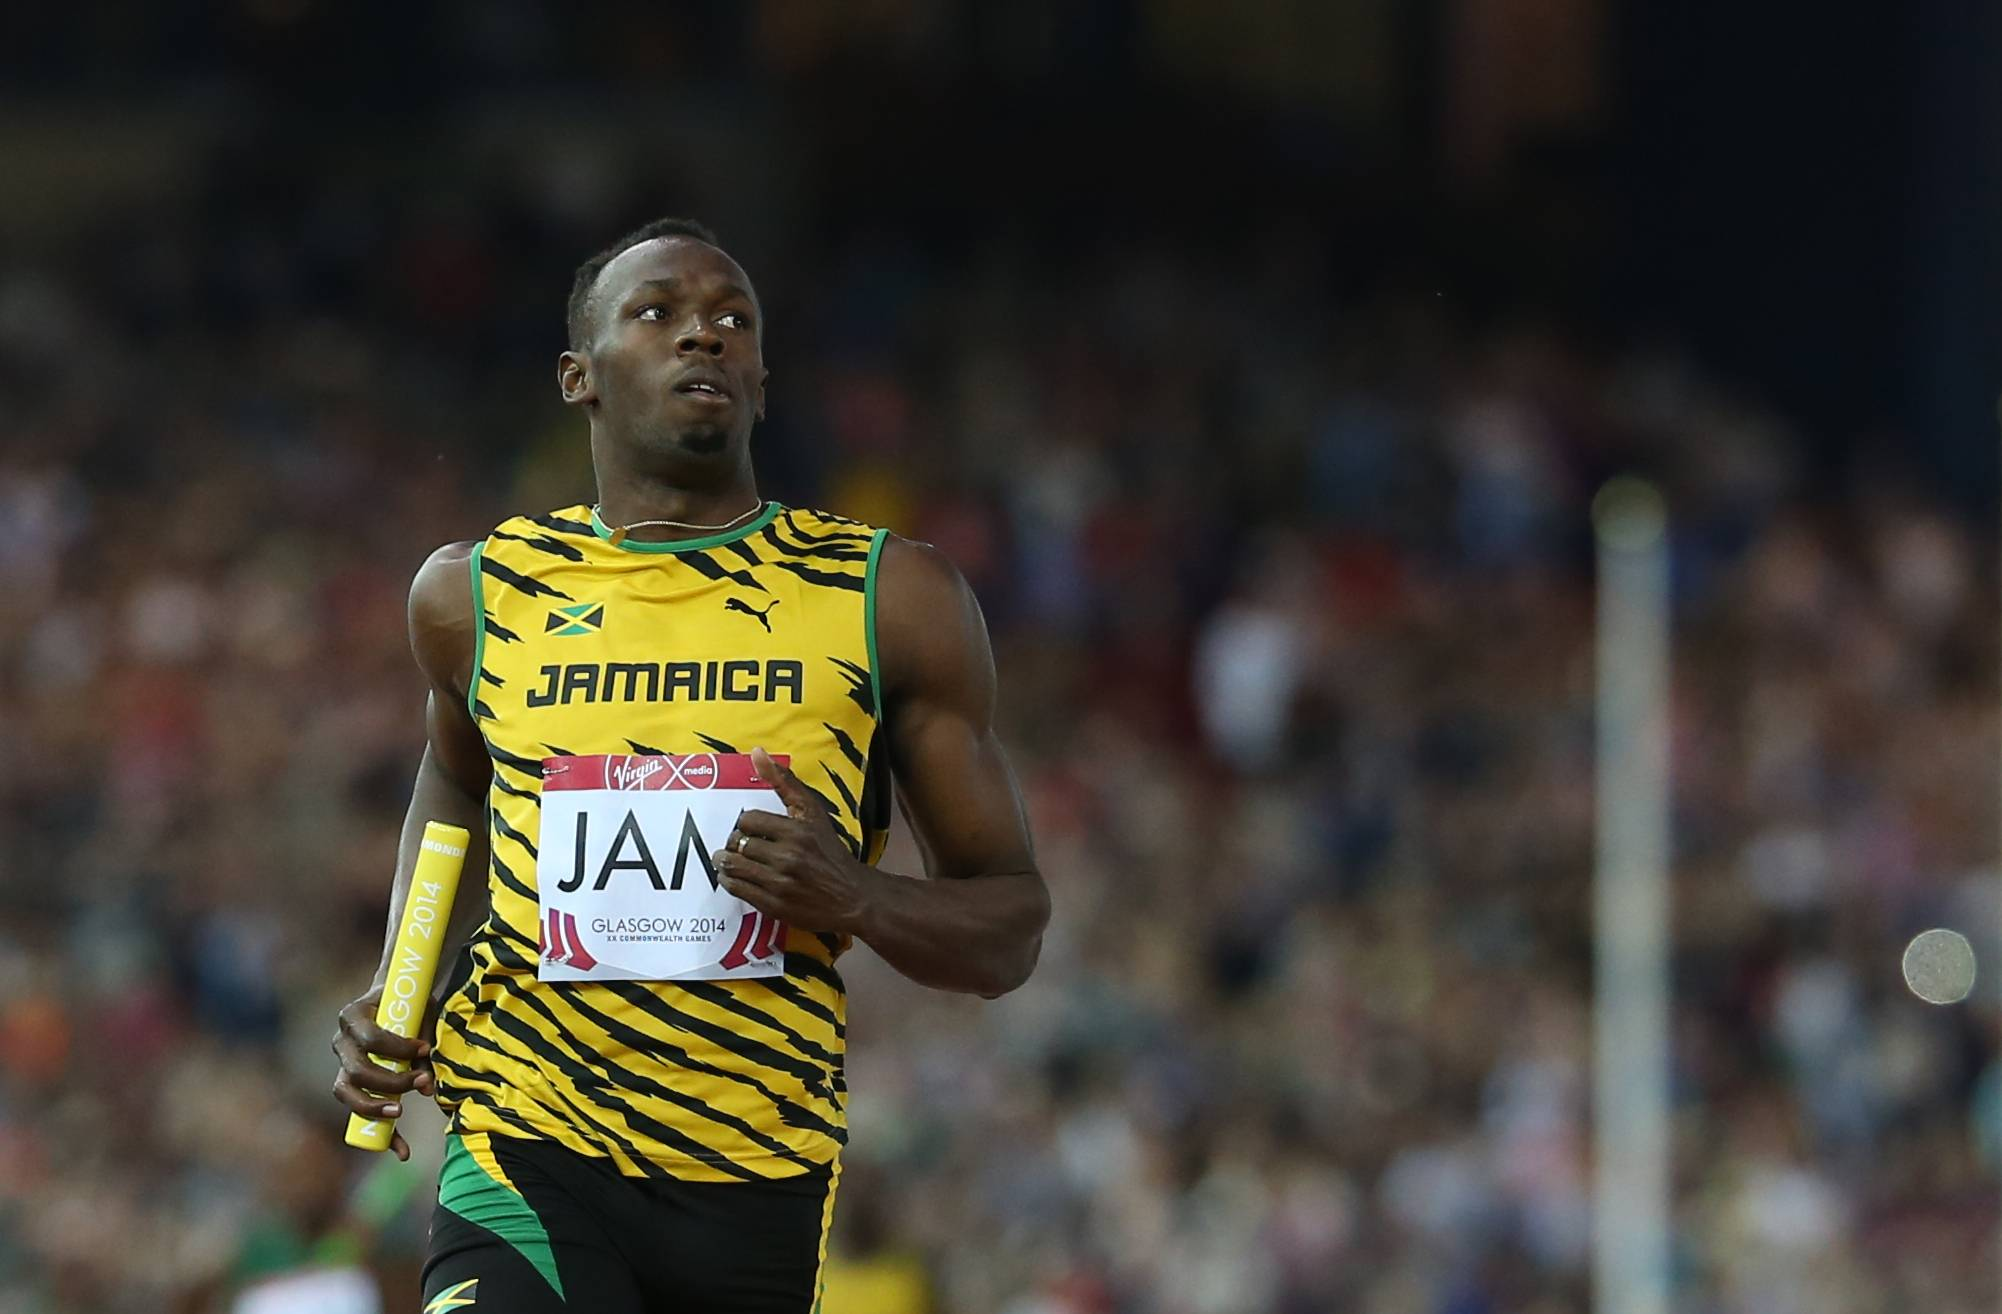 Usain Bolt of Jamaica brings the baton home as he runs the last leg of his first round heat of the men's 4 by 100 meter relay in Hampden Park stadium during the Commonwealth Games 2014 in Glasgow, Scotland, Friday Aug. 1, 2014.